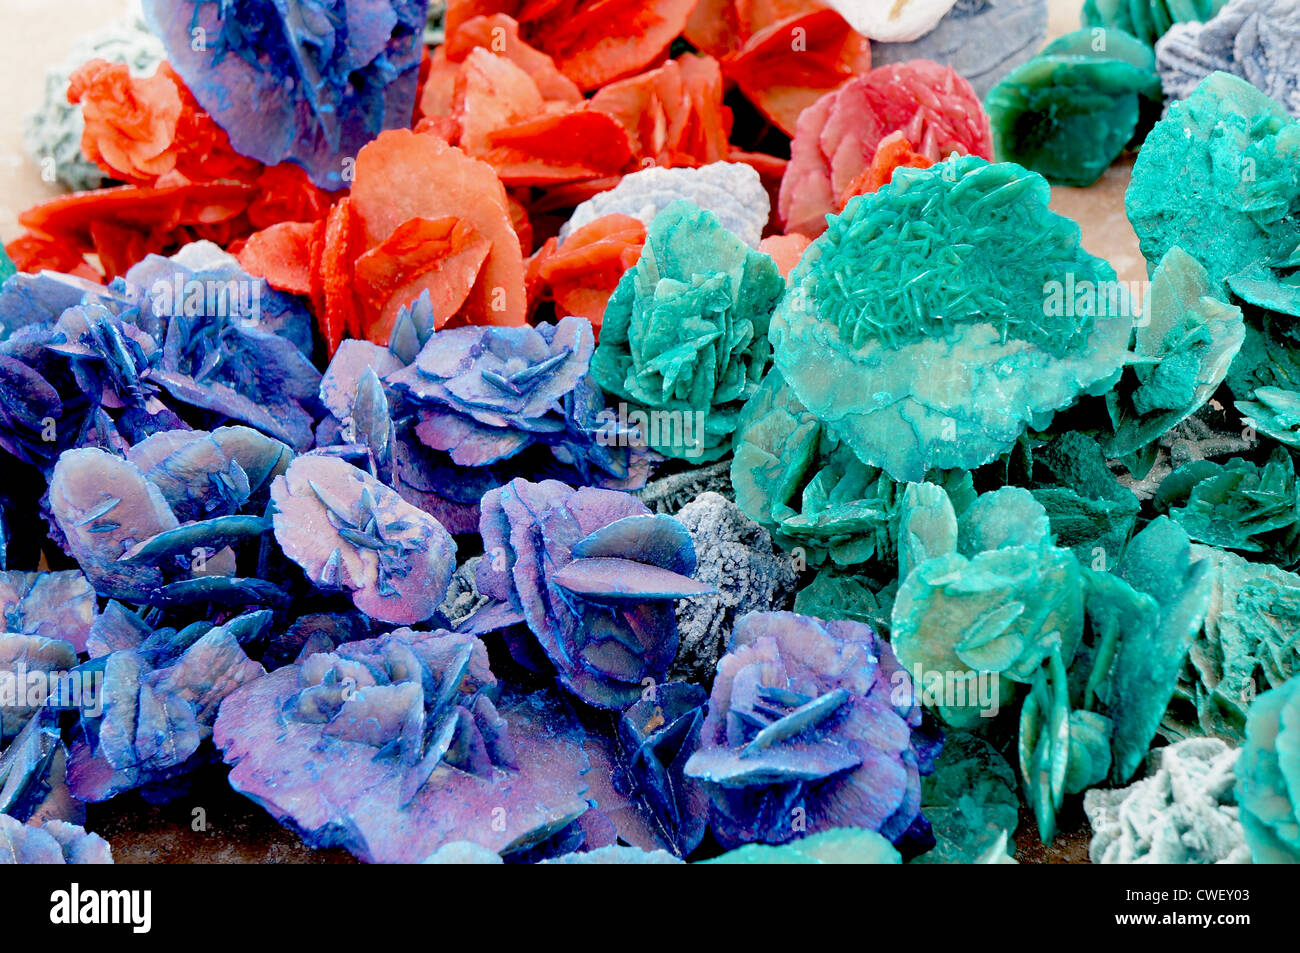 Close up view of colorful desert roses of the Sahara desert - Stock Image